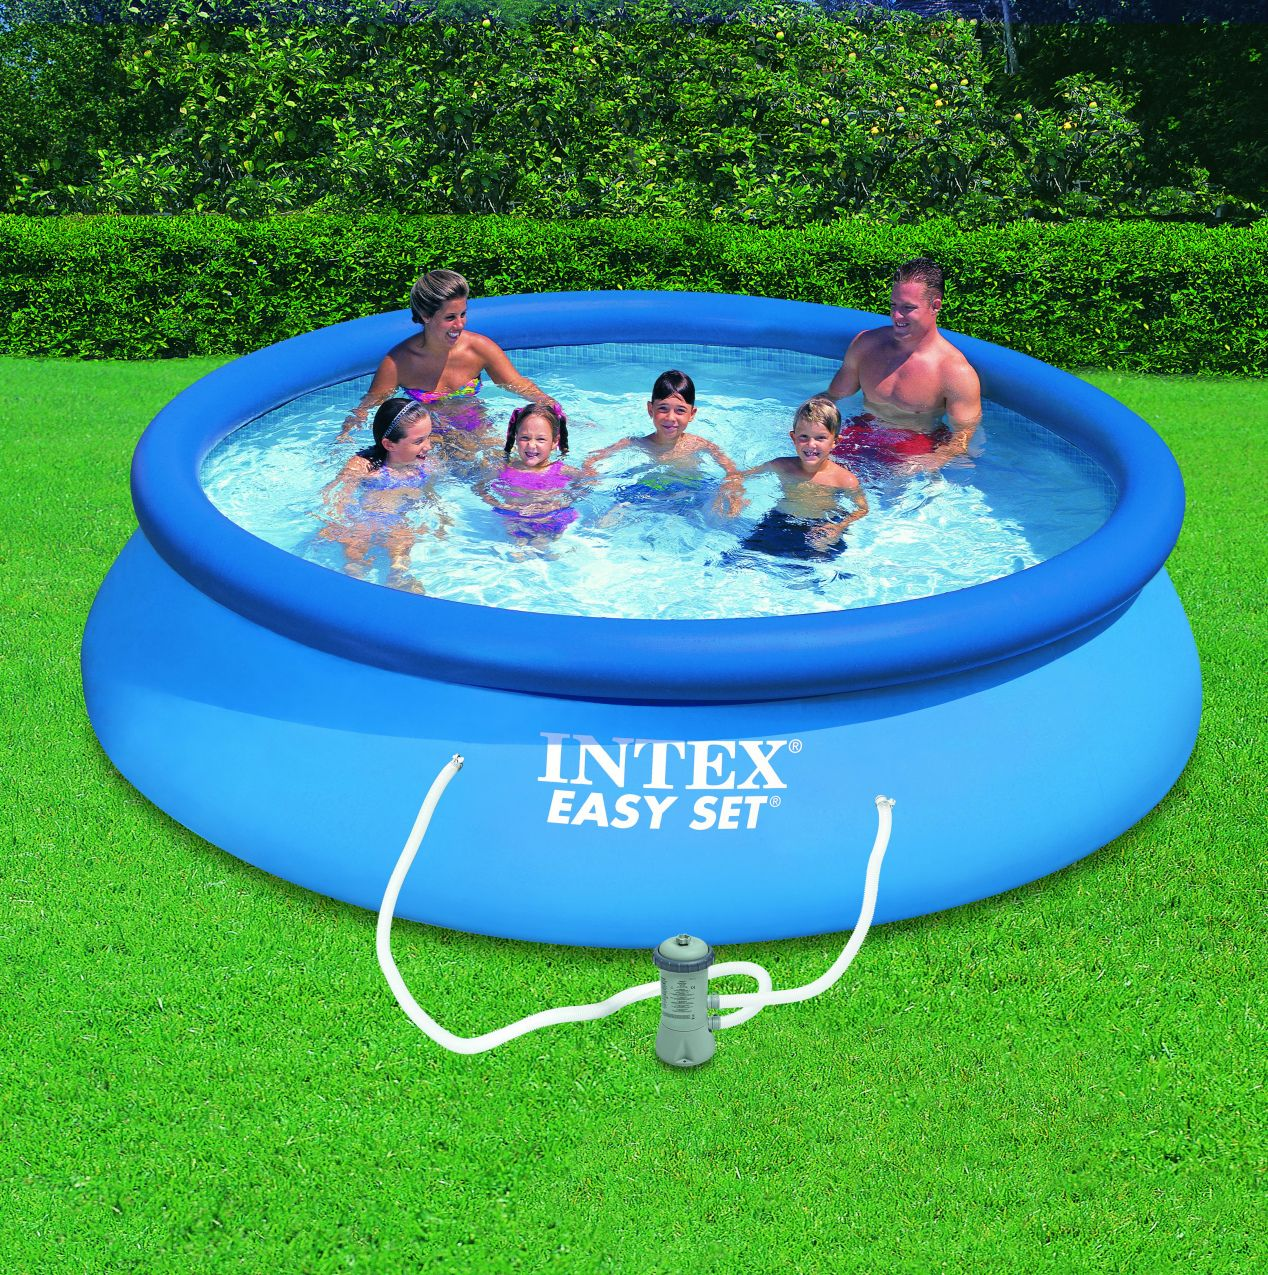 28 Liner Piscine Hors Sol 4m60 2018 With Images Easy Set Pools Cheap Above Ground Pool